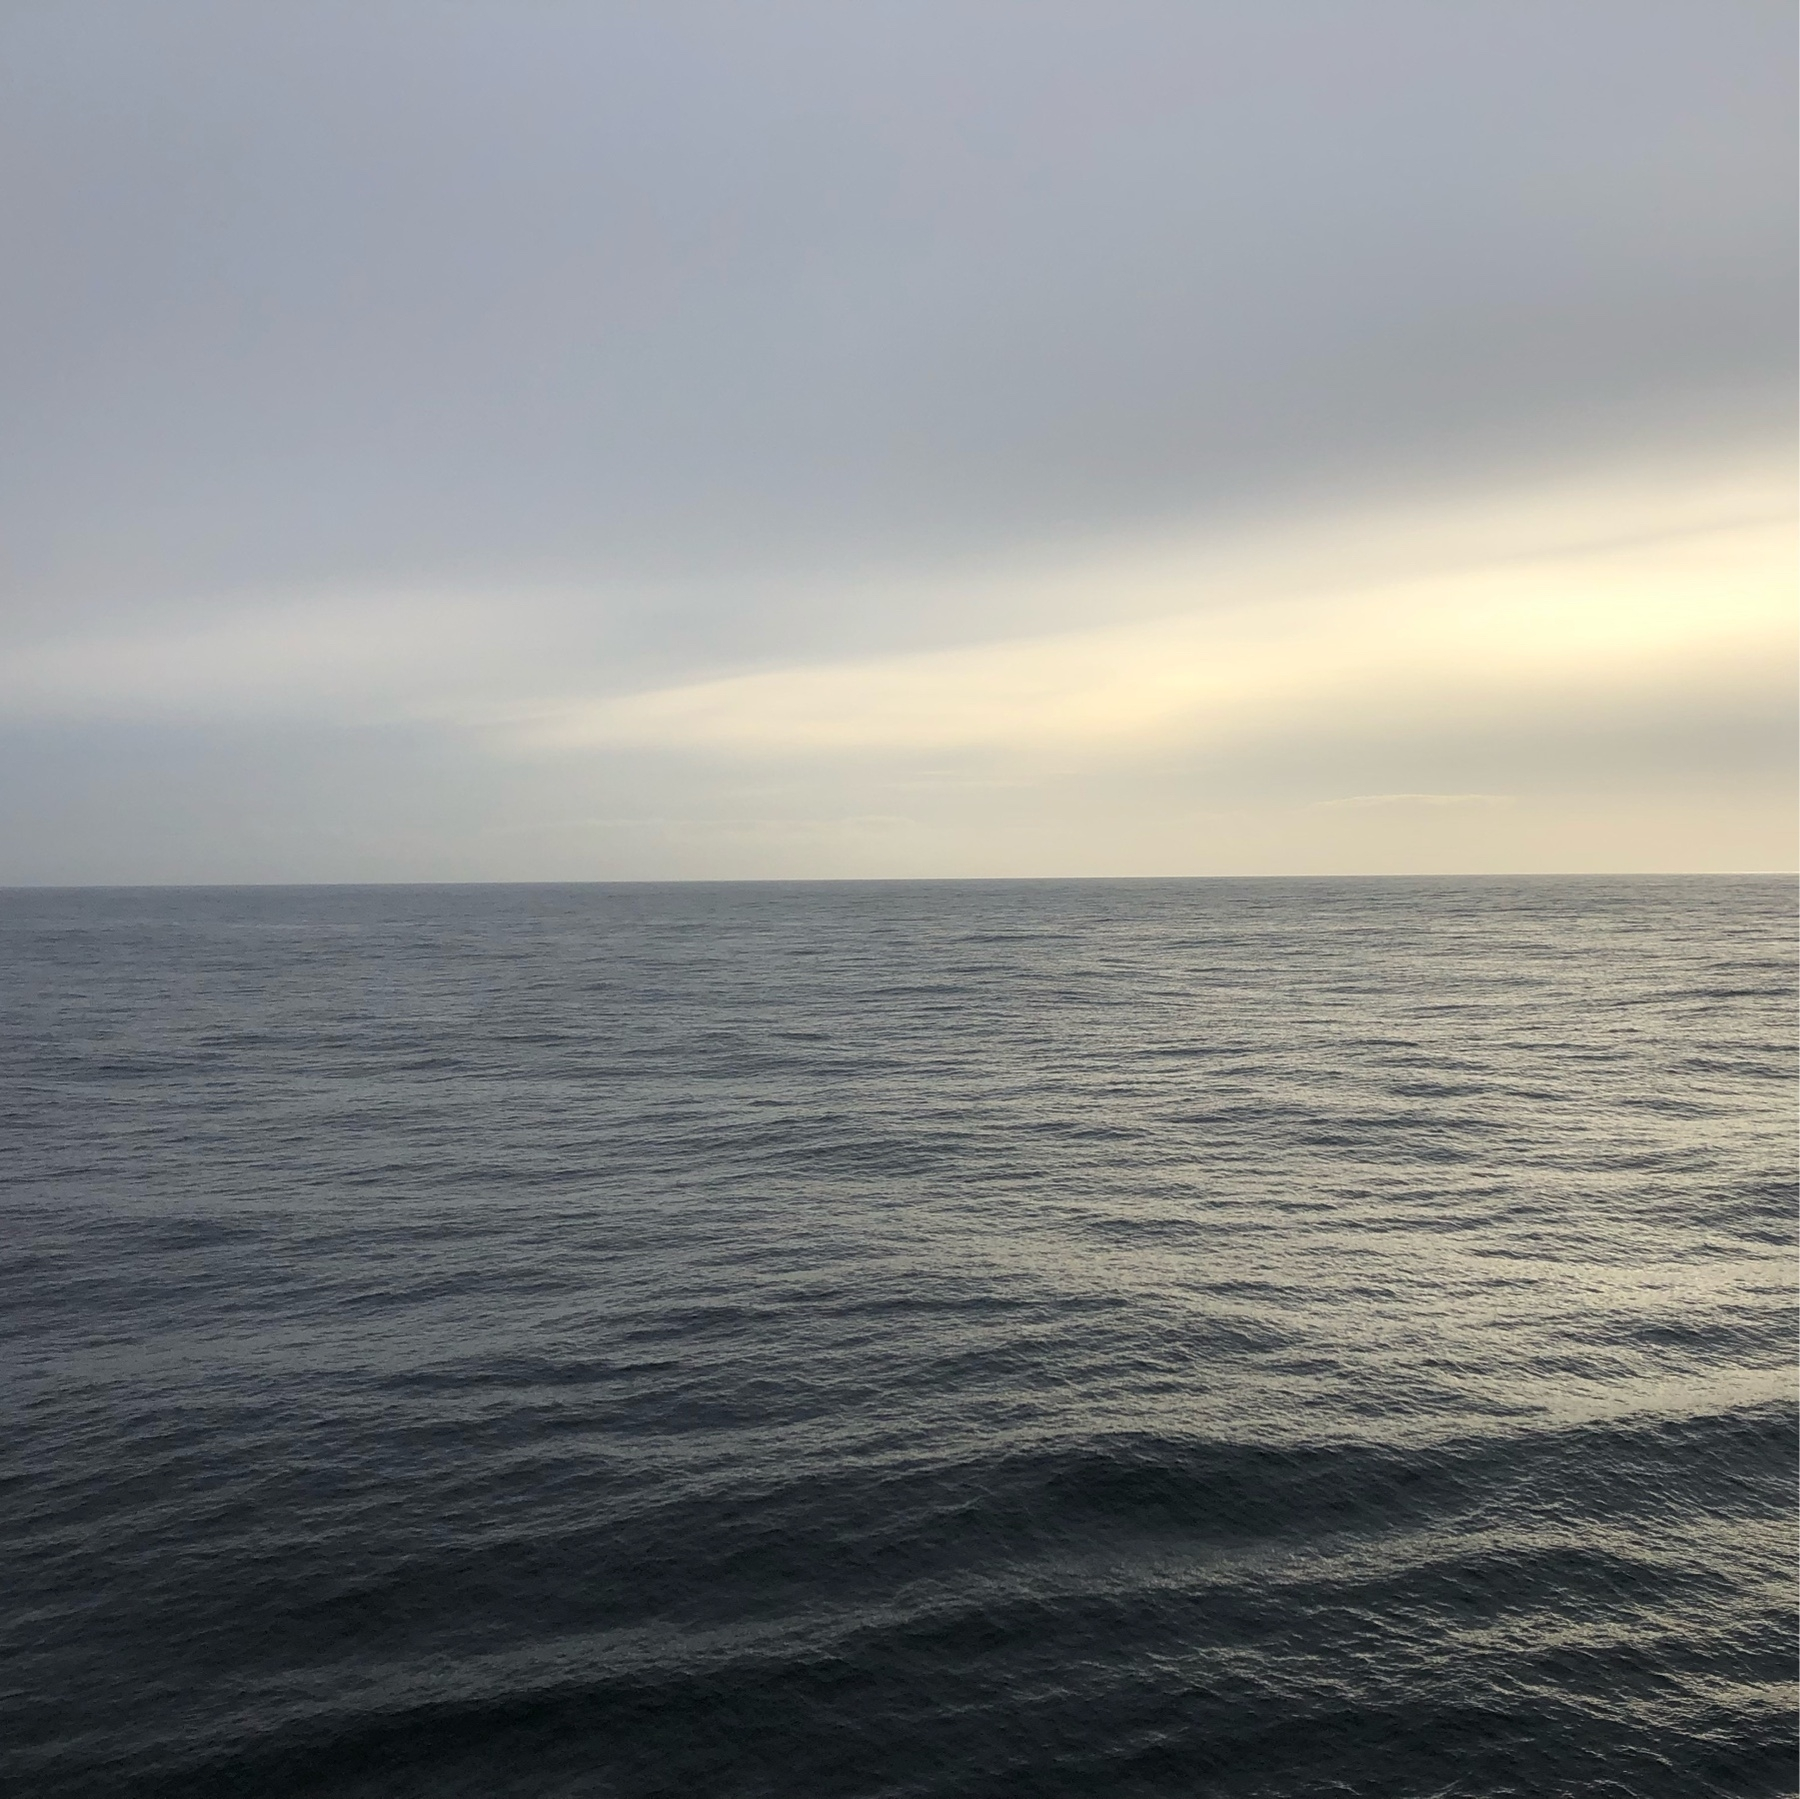 A rather flat pale blue ocean, with a pale gray sky above. Smooth sailing.